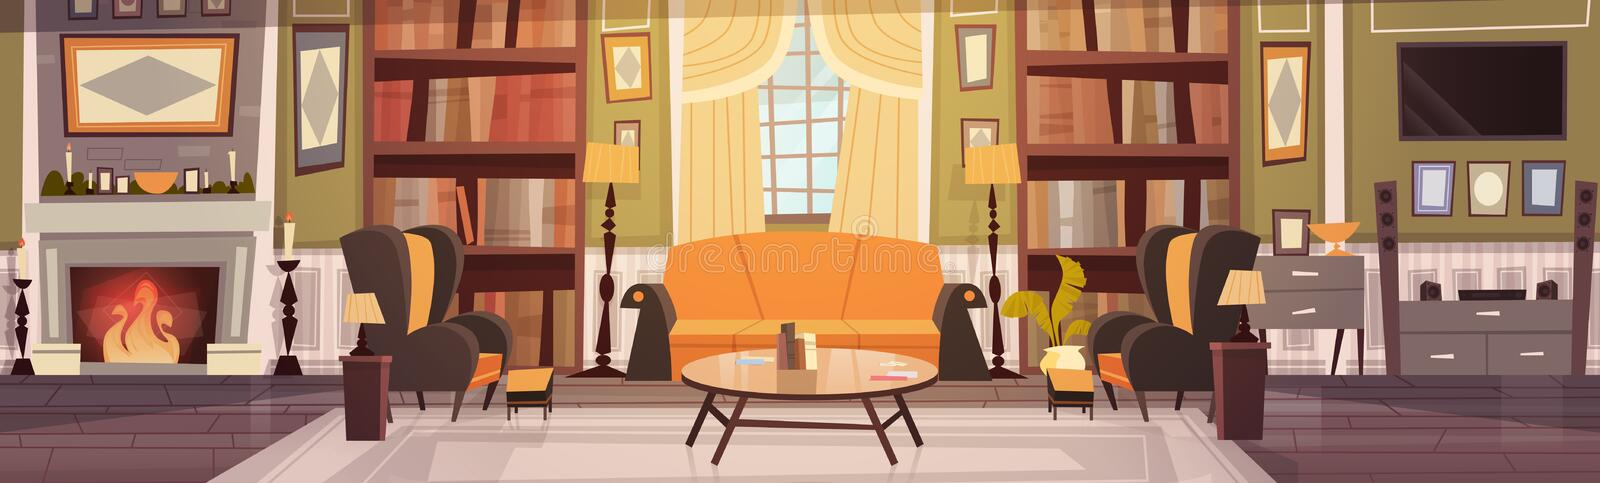 Cozy Living Room Interior Design With Furniture, Sofa, Table Armchairs, Fireplace Bookcase, Horizontal Banner vector illustration